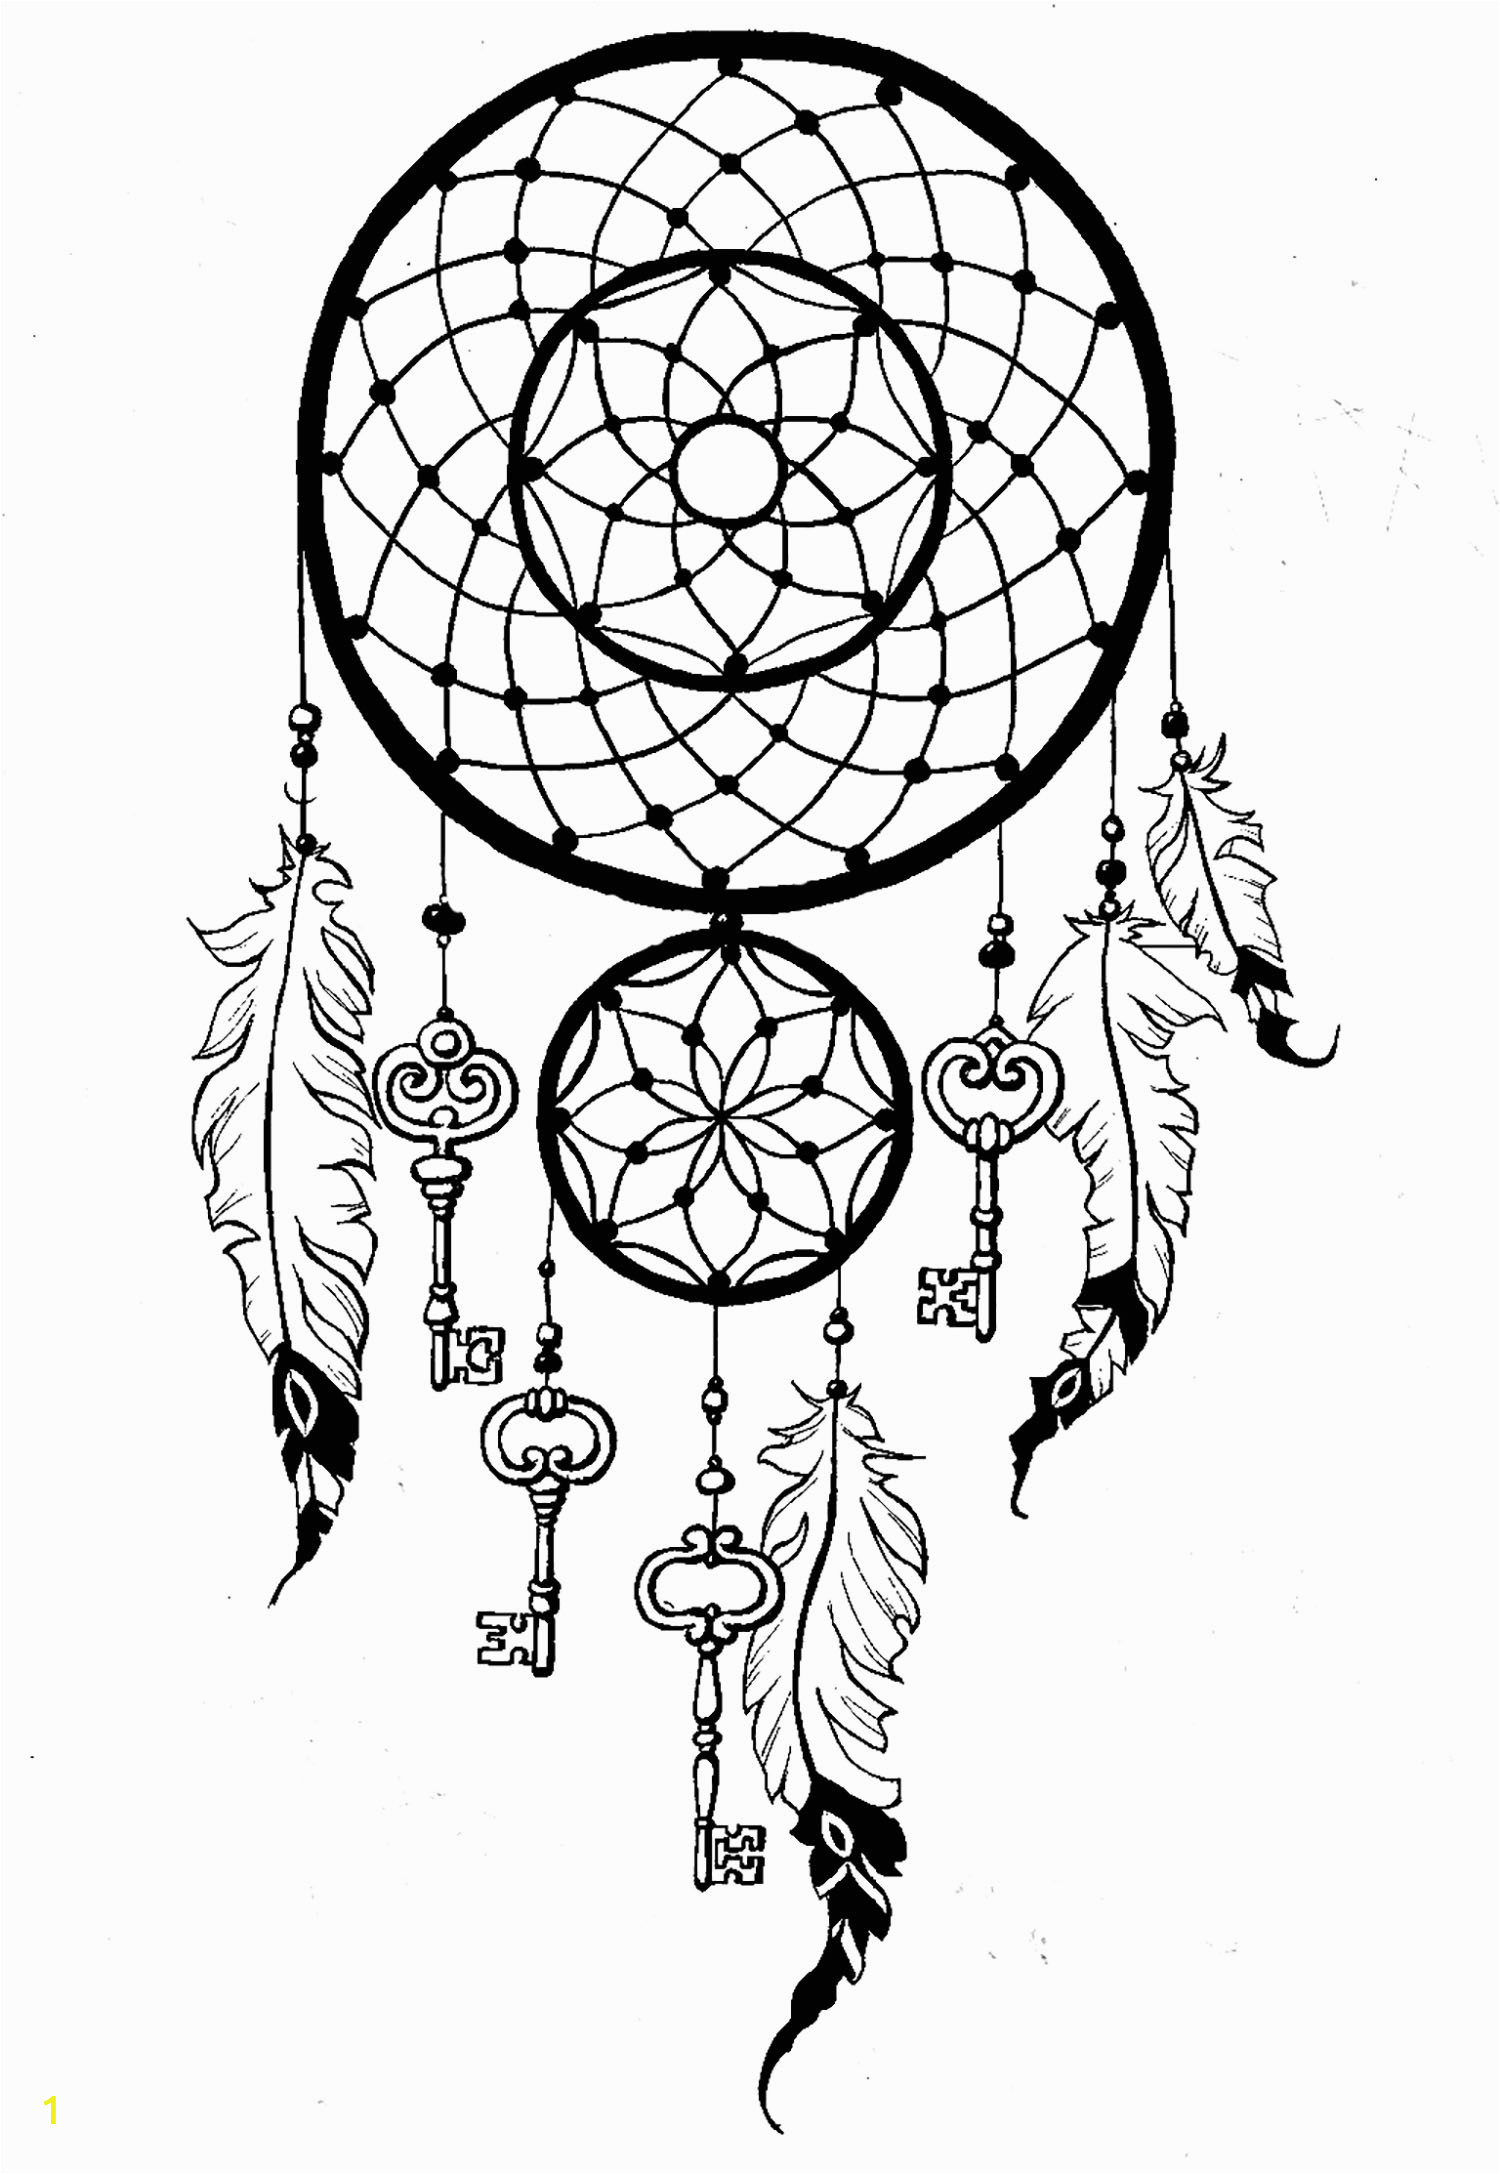 Free Printable Dream Catcher Coloring Pages Dreamcatcher Keys Dreamcatchers Adult Coloring Pages